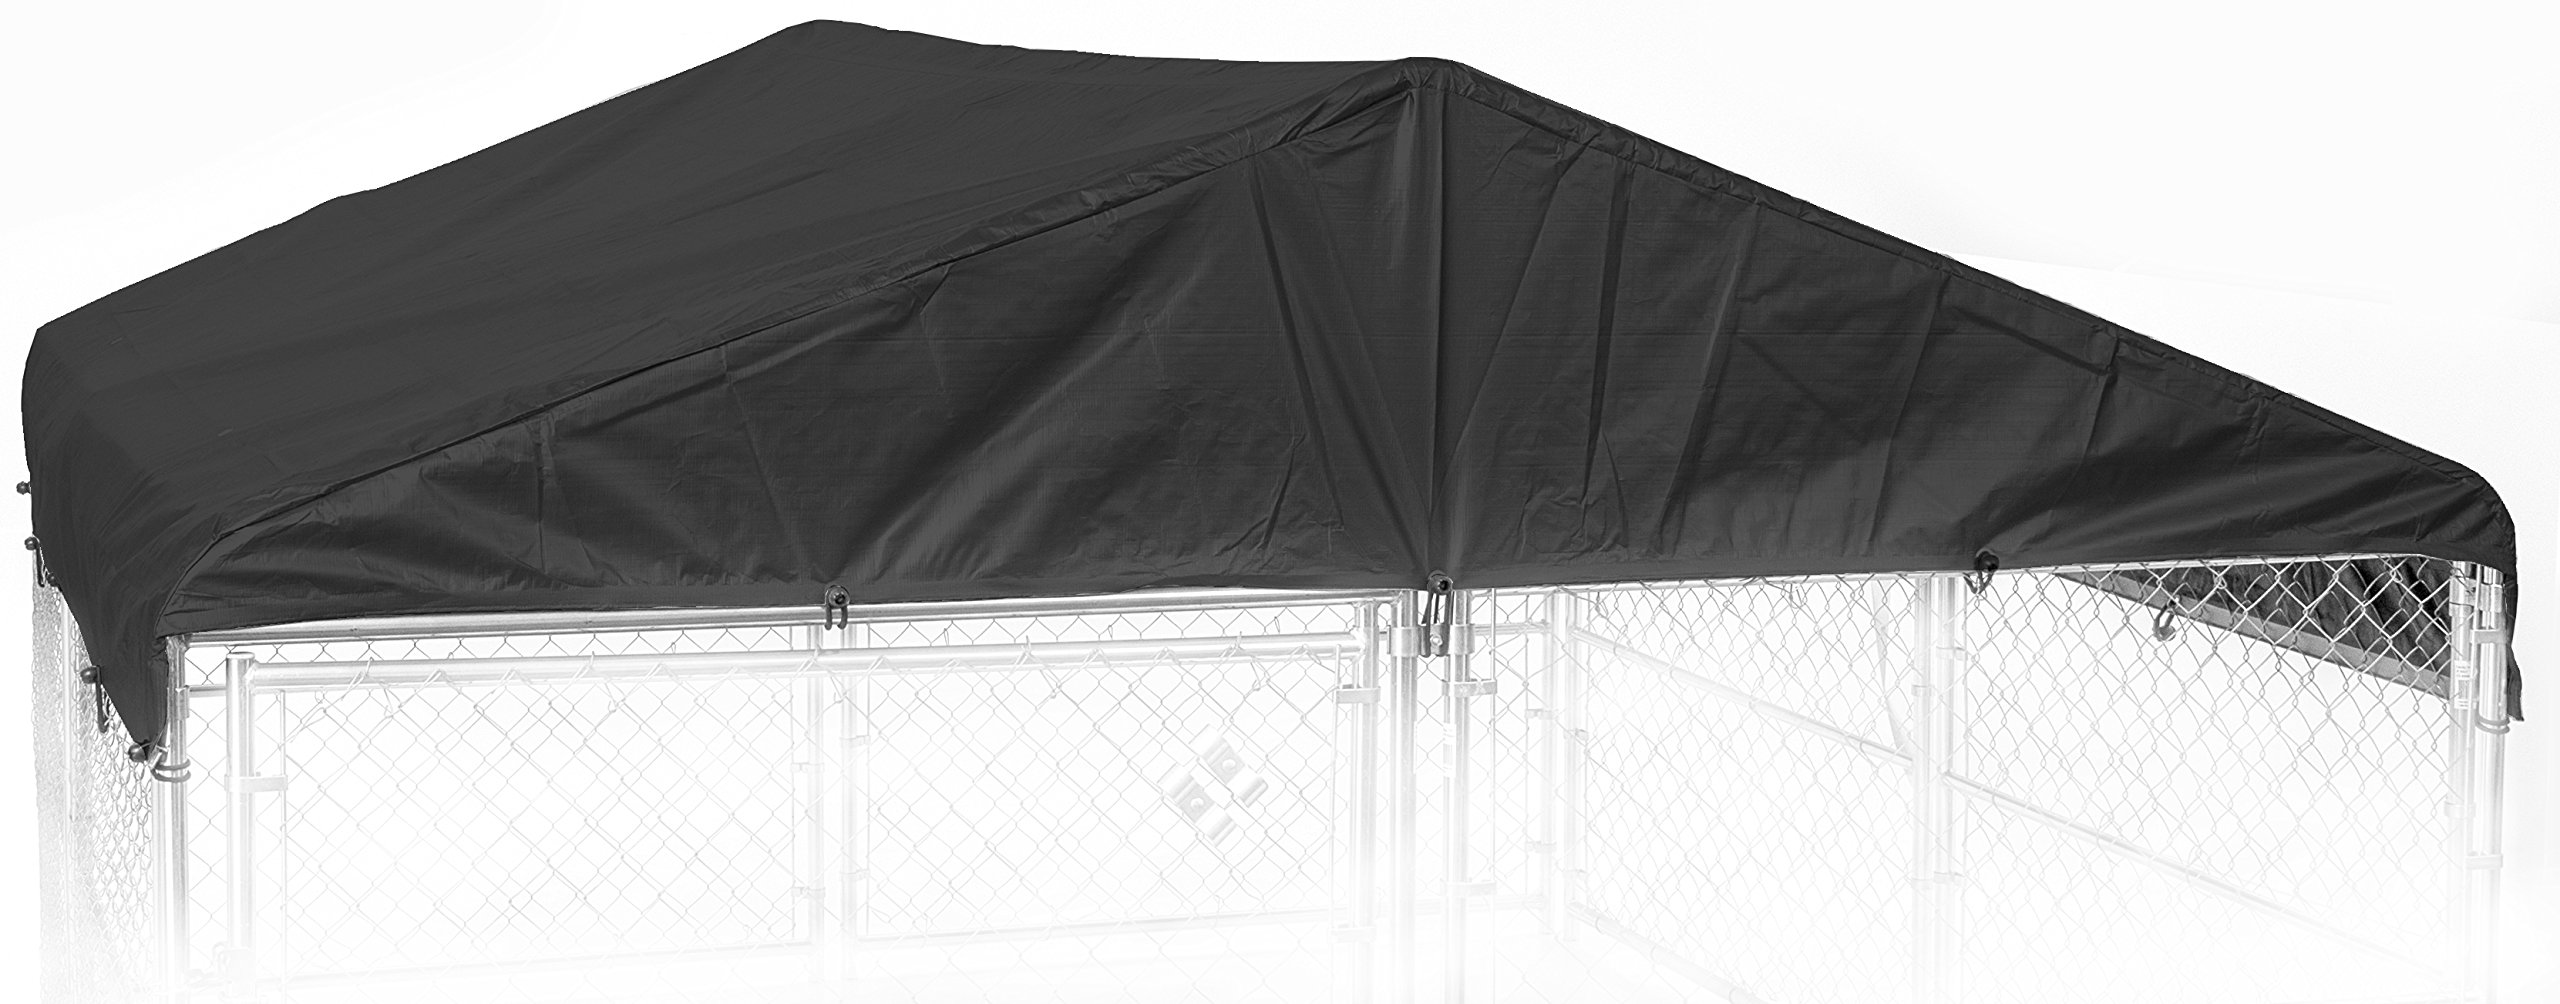 Weatherguard Kennel Roof Frame & Cover by Weatherguard